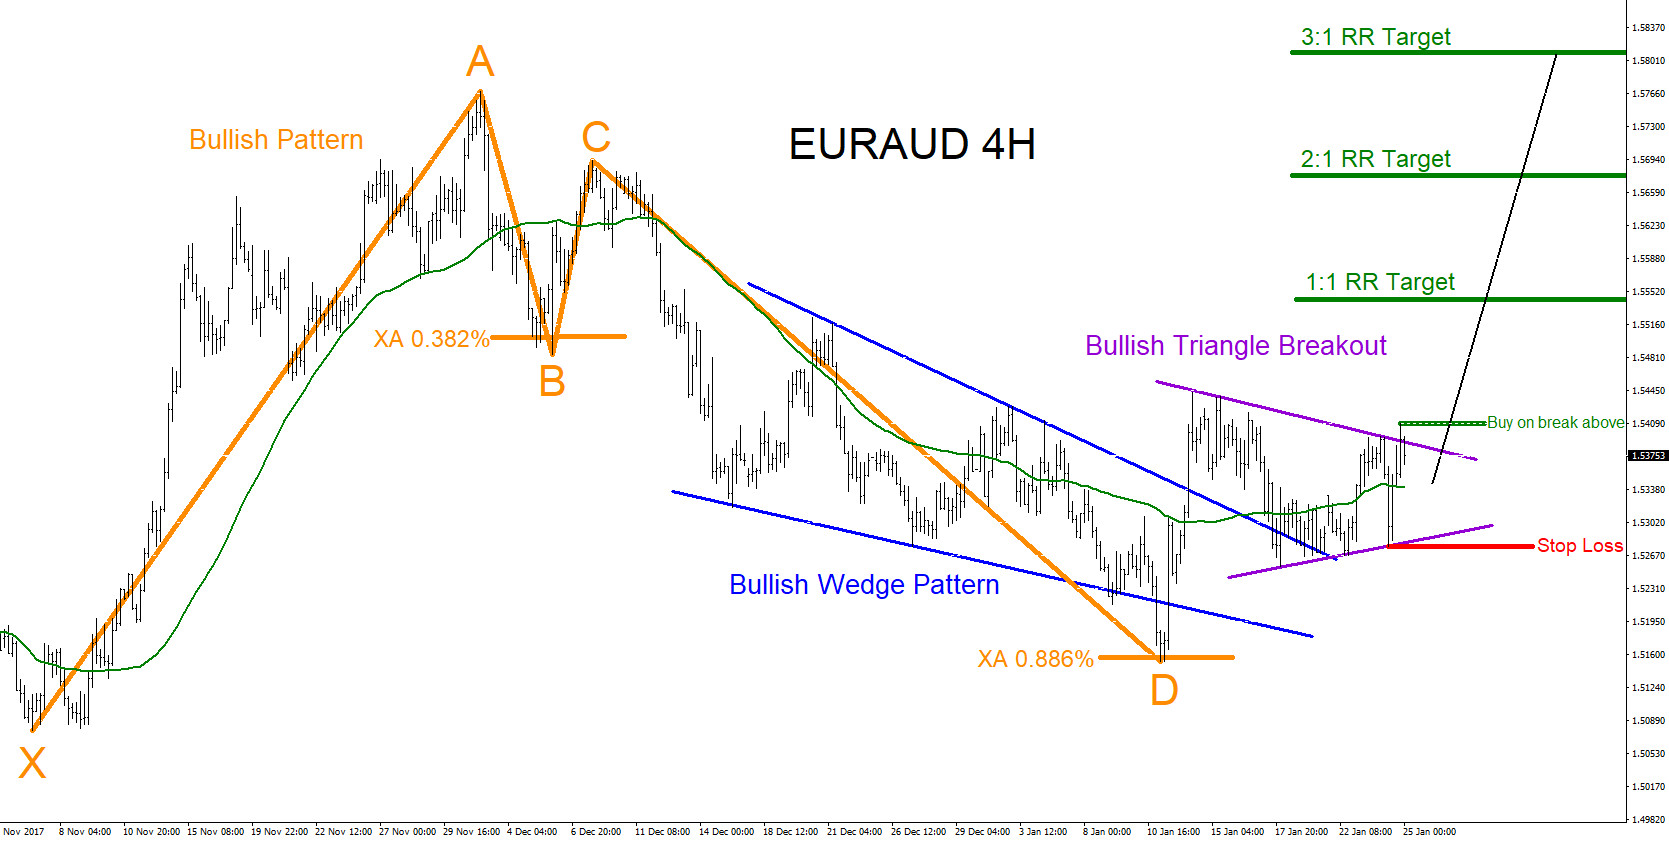 EURAUD : Will Pair Push Higher?